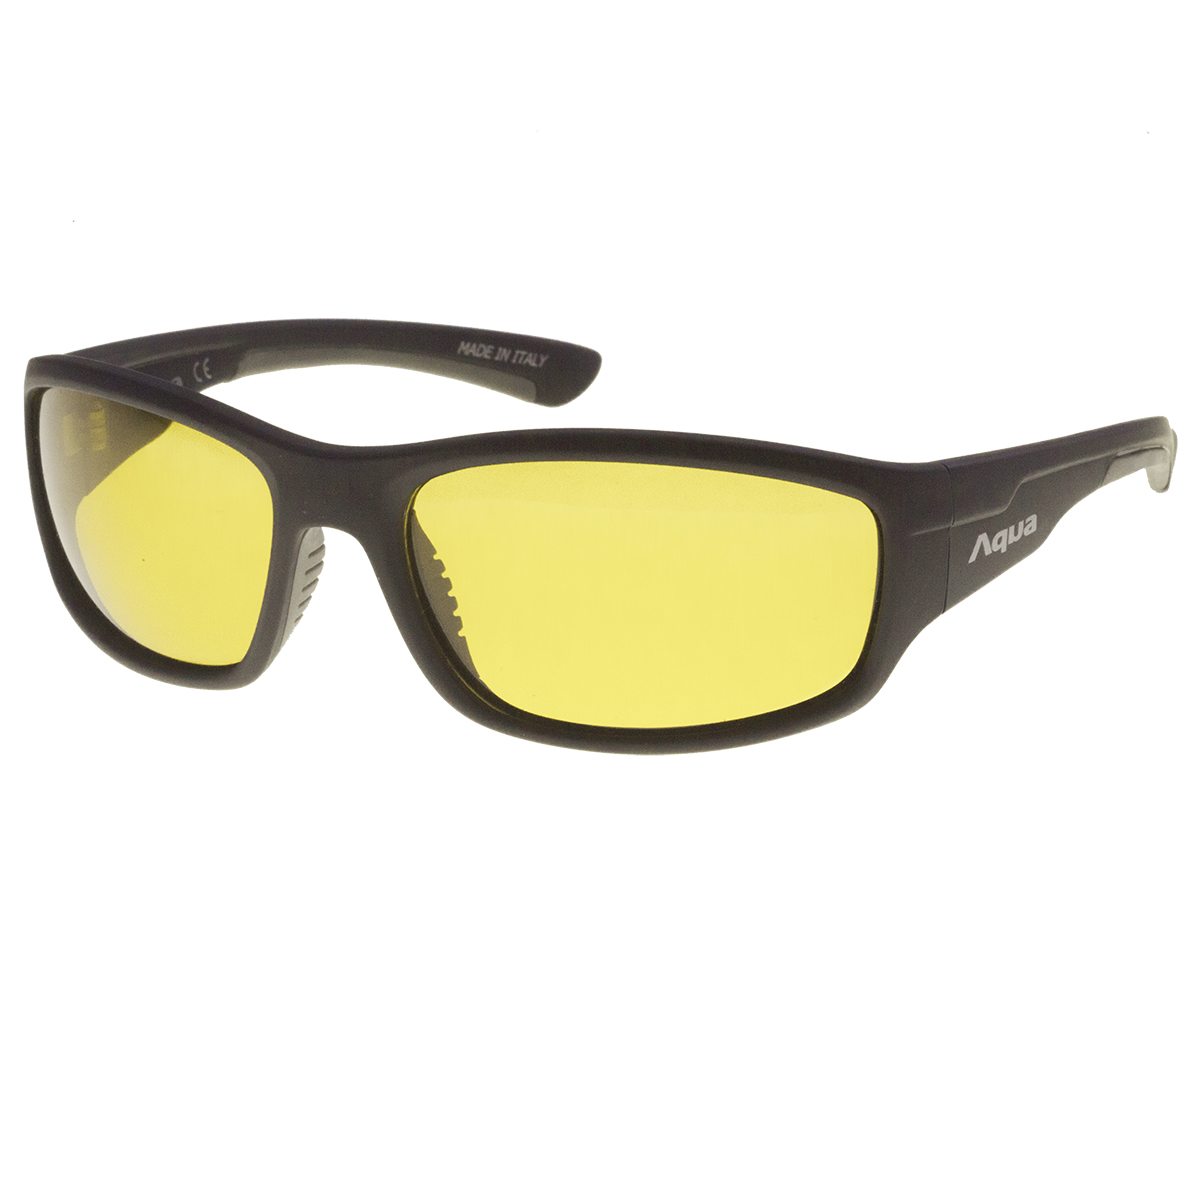 Best type of polarized sunglasses for fishing louisiana for Best polarized sunglasses for fishing